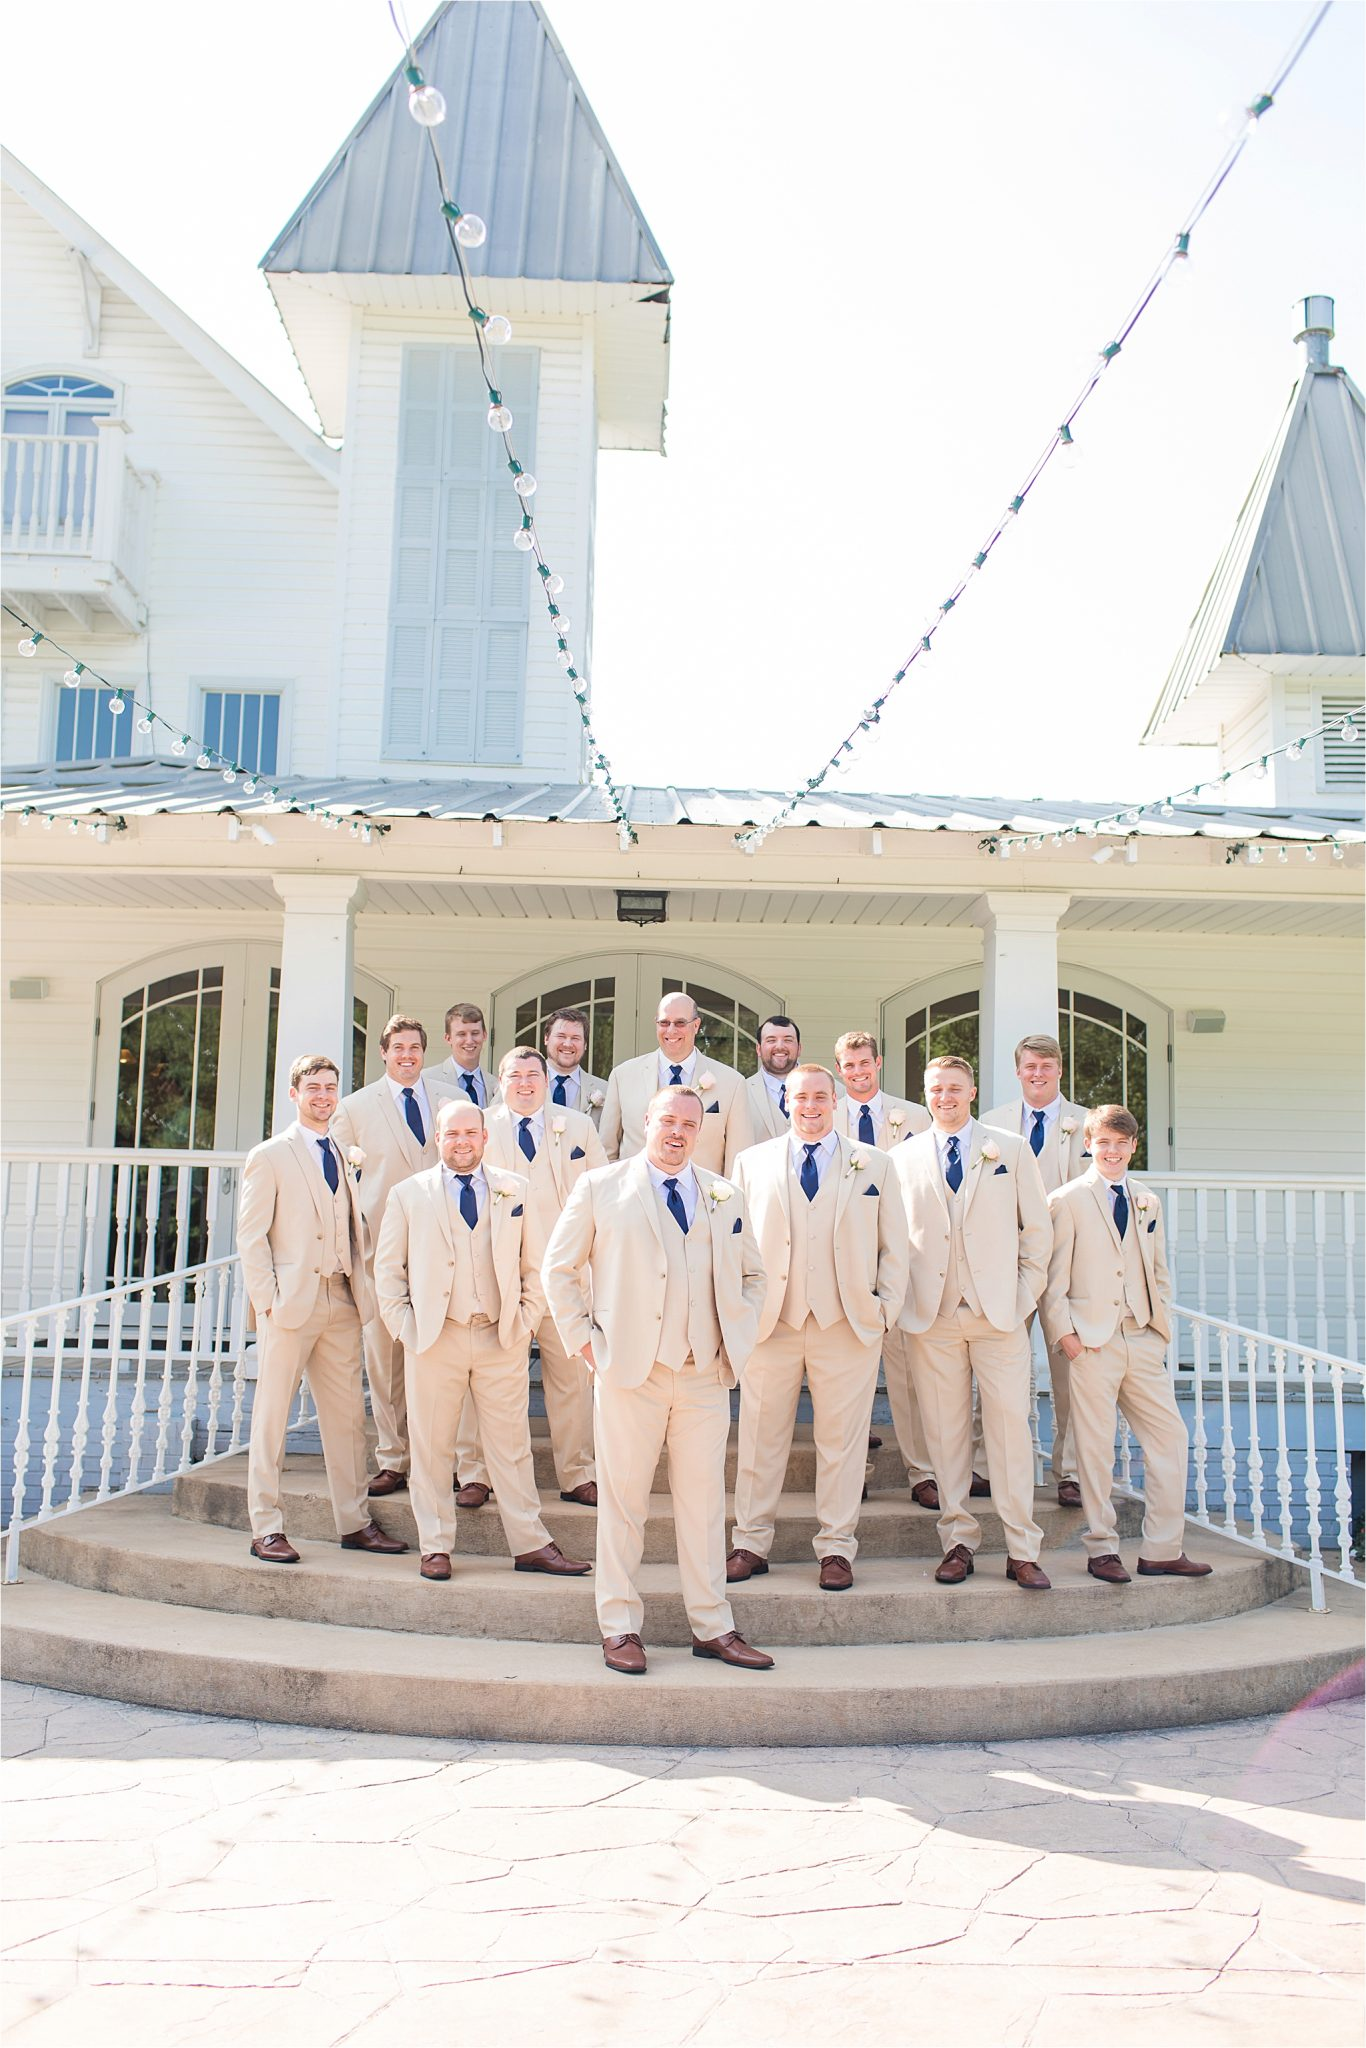 Sonnet House, Birmingham Alabama Wedding Photographer, Grooms and groomsmen